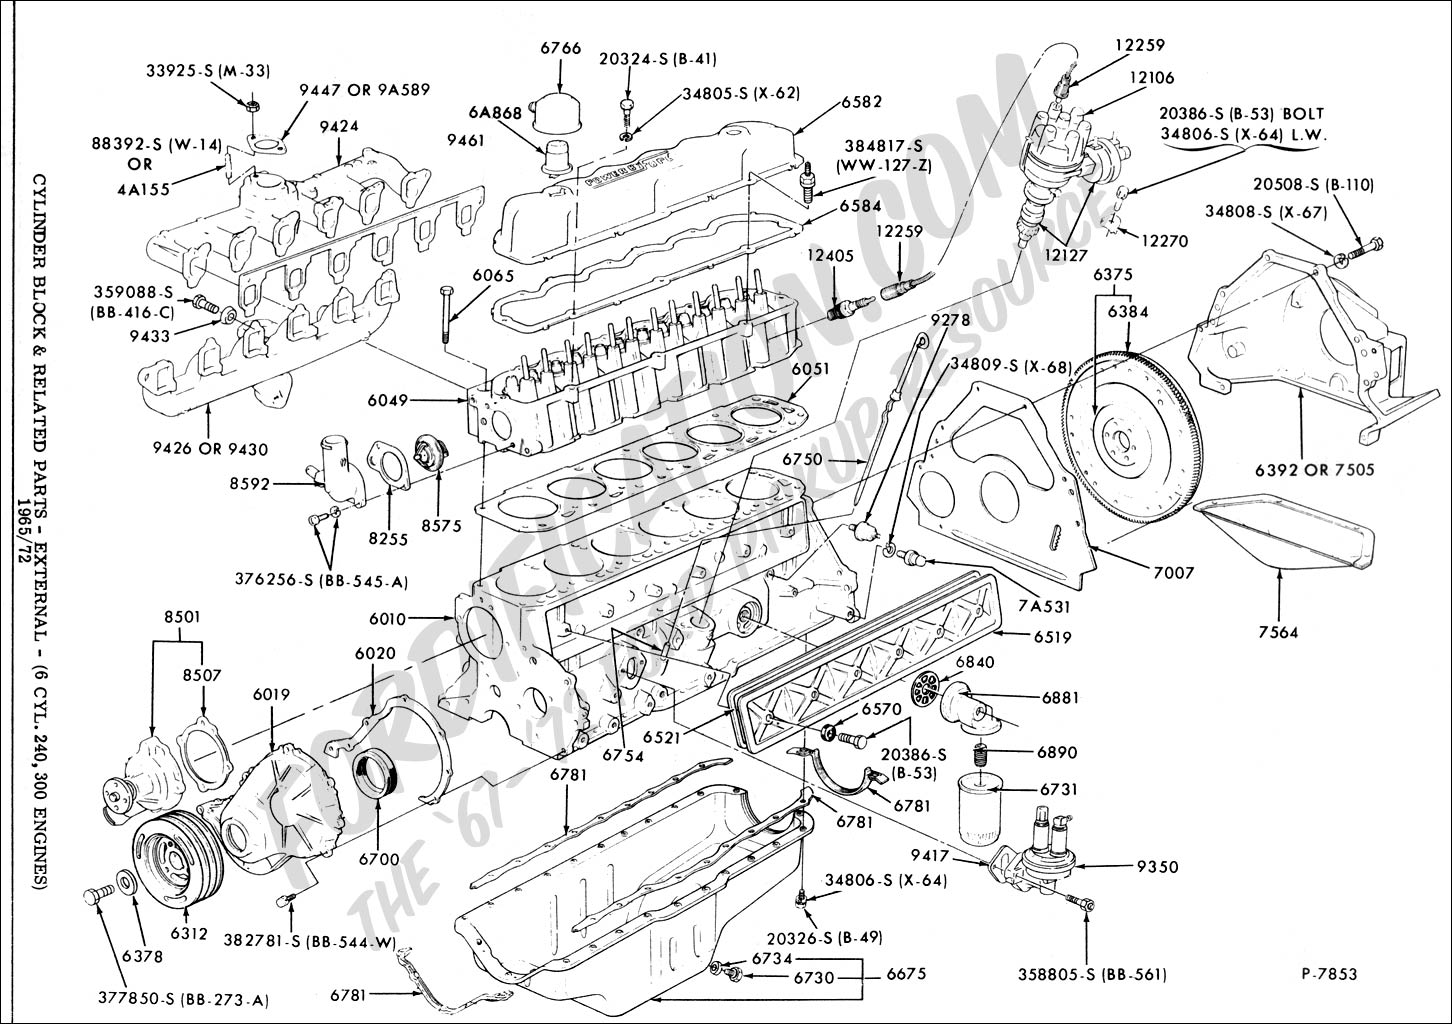 Ford 300 Wiring | Wiring Diagram  L Ford Coil Wiring Diagram on ford ignition diagram, ford electrical diagram, ford distributor diagram, ford coil test, ford coil pack diagram, 2005 ford freestar spark plug wire diagram, ford coil connector, ford msd 6al wiring-diagram, ignition coil circuit diagram, ford 3.0l coil pack replacement, ford tfi distributor, ford 289 coil wiring, ford 302 coil wiring, ford econoline wiring-diagram, ford model t coil, ford engine coil, ford dis coil, ford coil on plug conversion, ford truck wiring diagrams, ford f150 coil diagram,